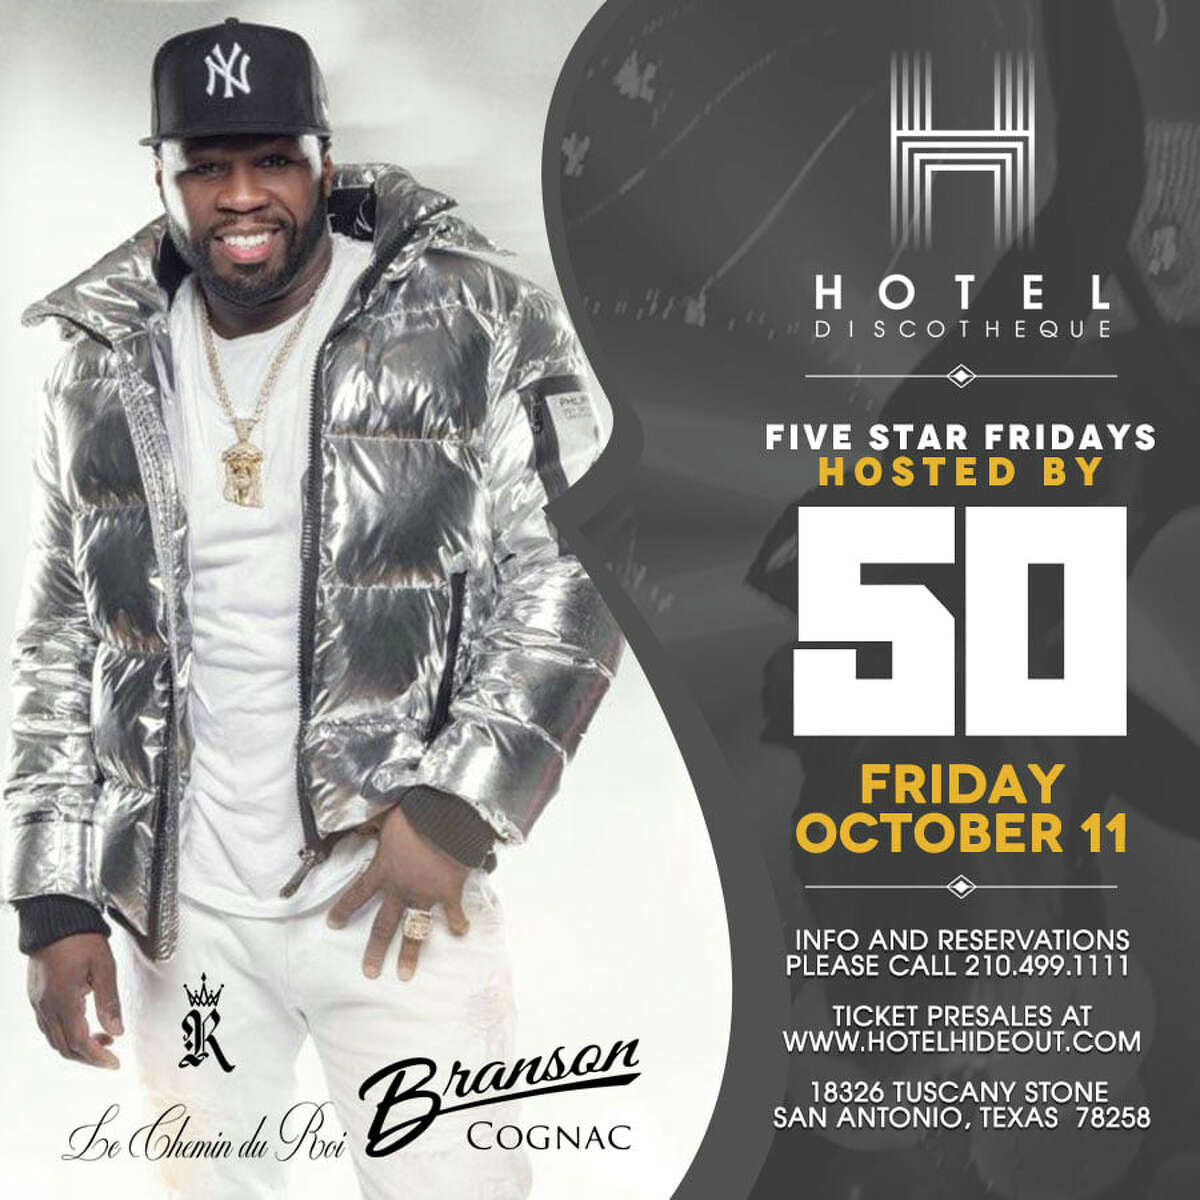 """Hotel Discotheque, the Stone Oak nightclub, announced 50 Cent will host """"Five Star Fridays"""" on Oct. 11. Club-goers are invited out to the 18326 Tuscany Stone club for the chance to see 50 Cent. Tickets are $25 a person and can be purchased online."""